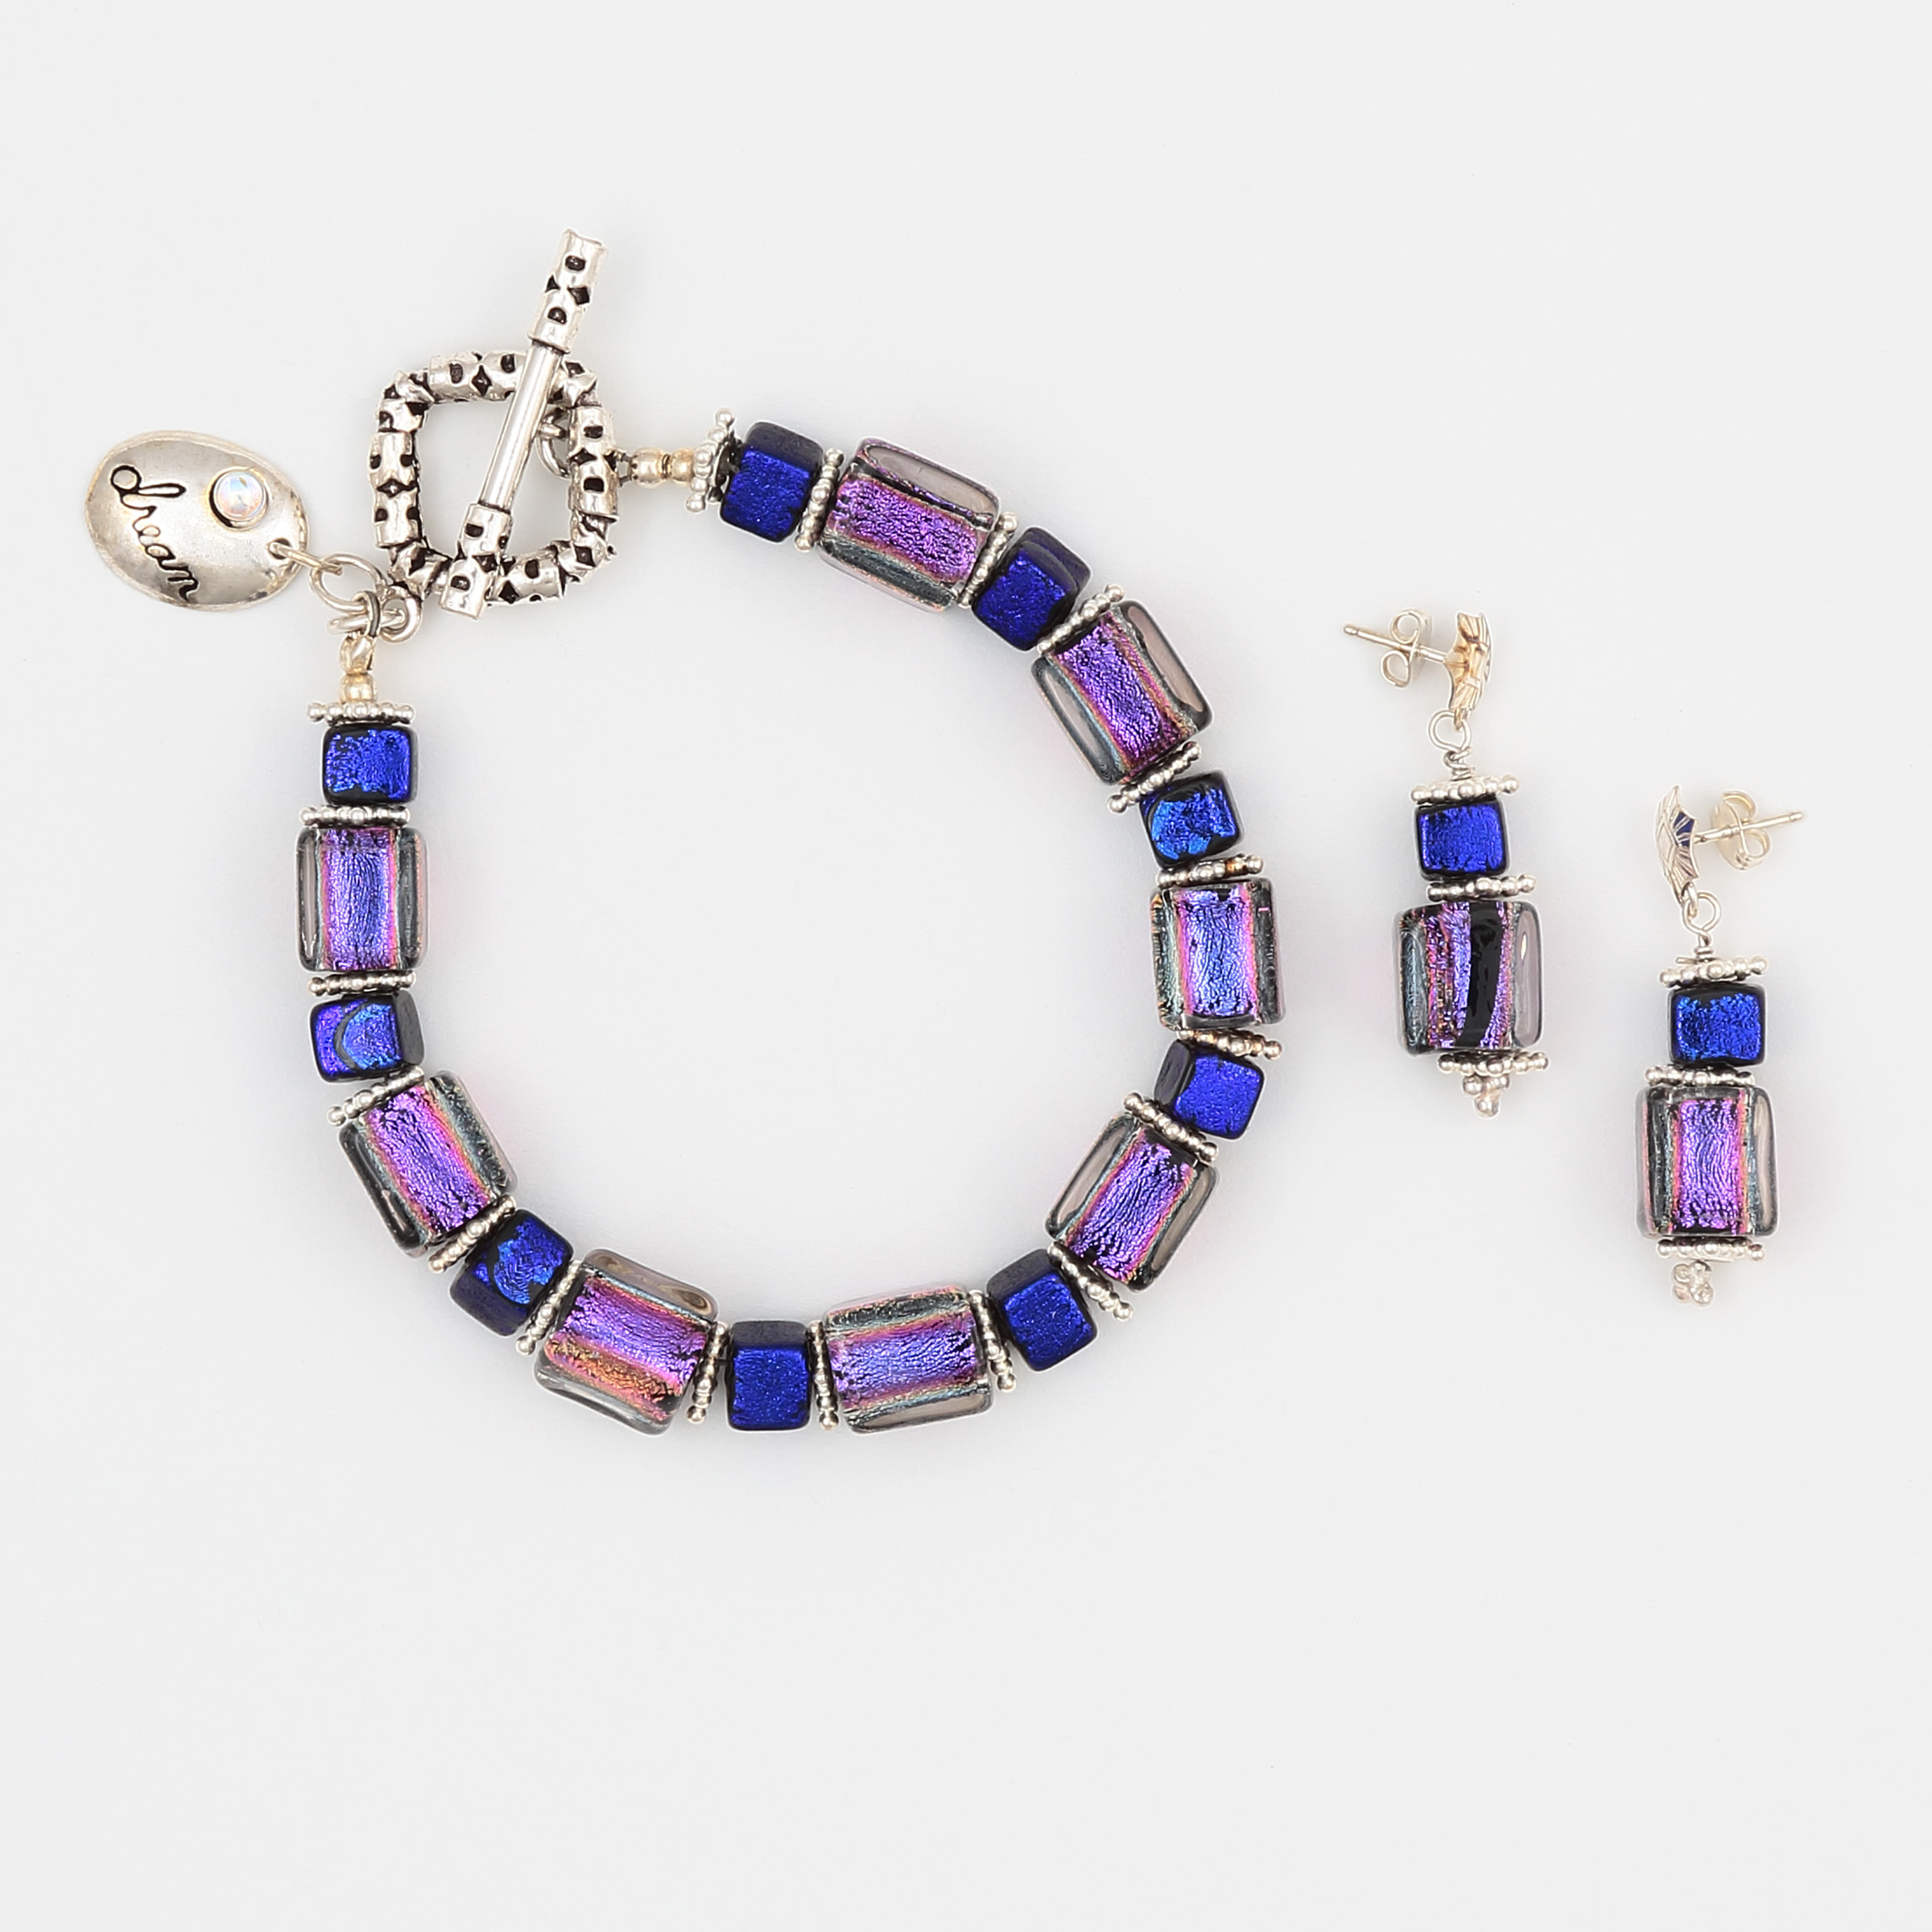 PURPLE HAZE SET- purple and blue metallic art glass bracelet and earrings with sterling silver